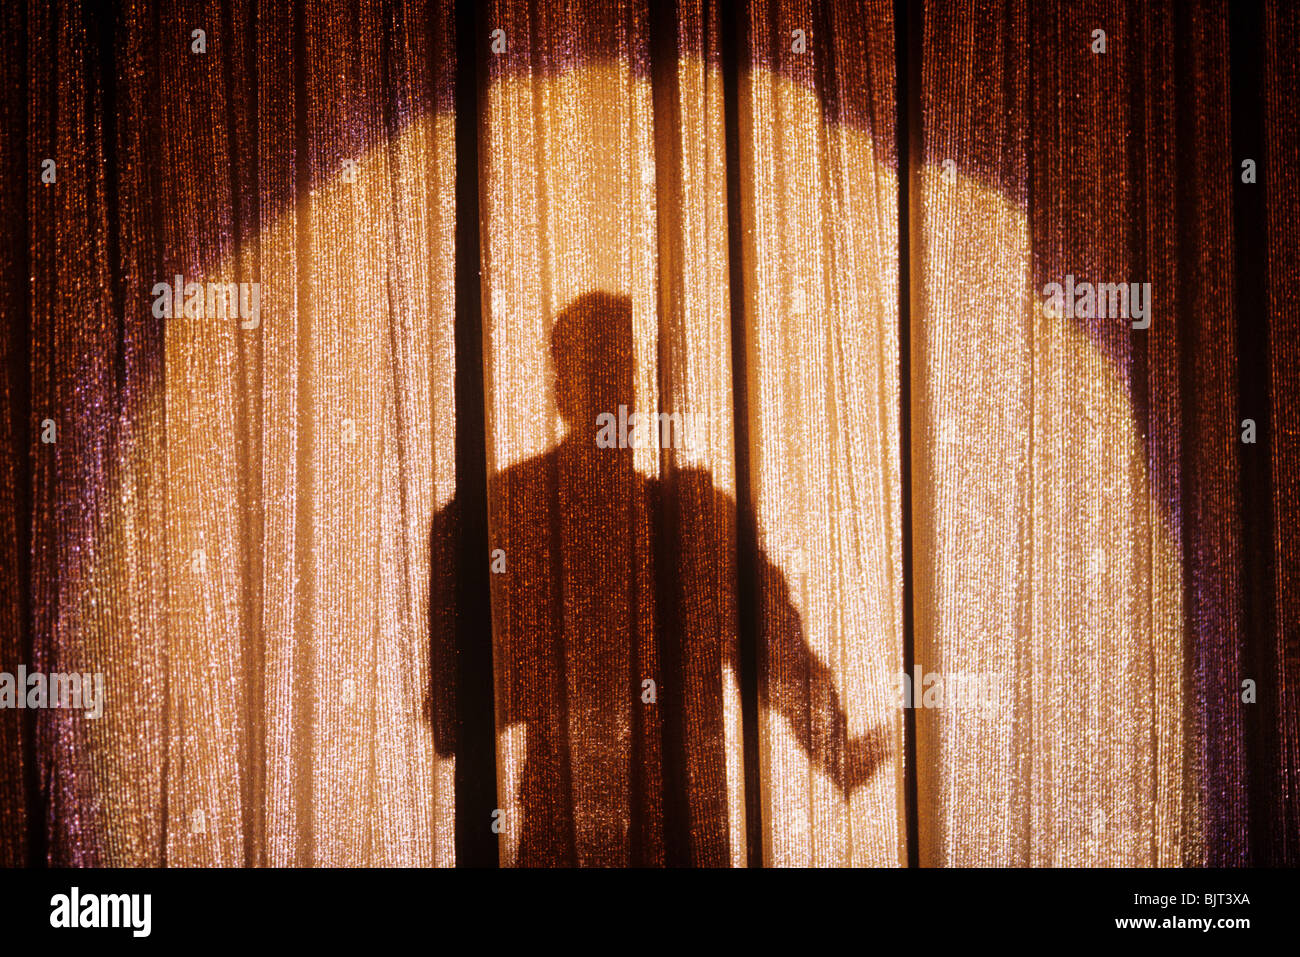 Shadow of a person on a stage curtain - Stock Image